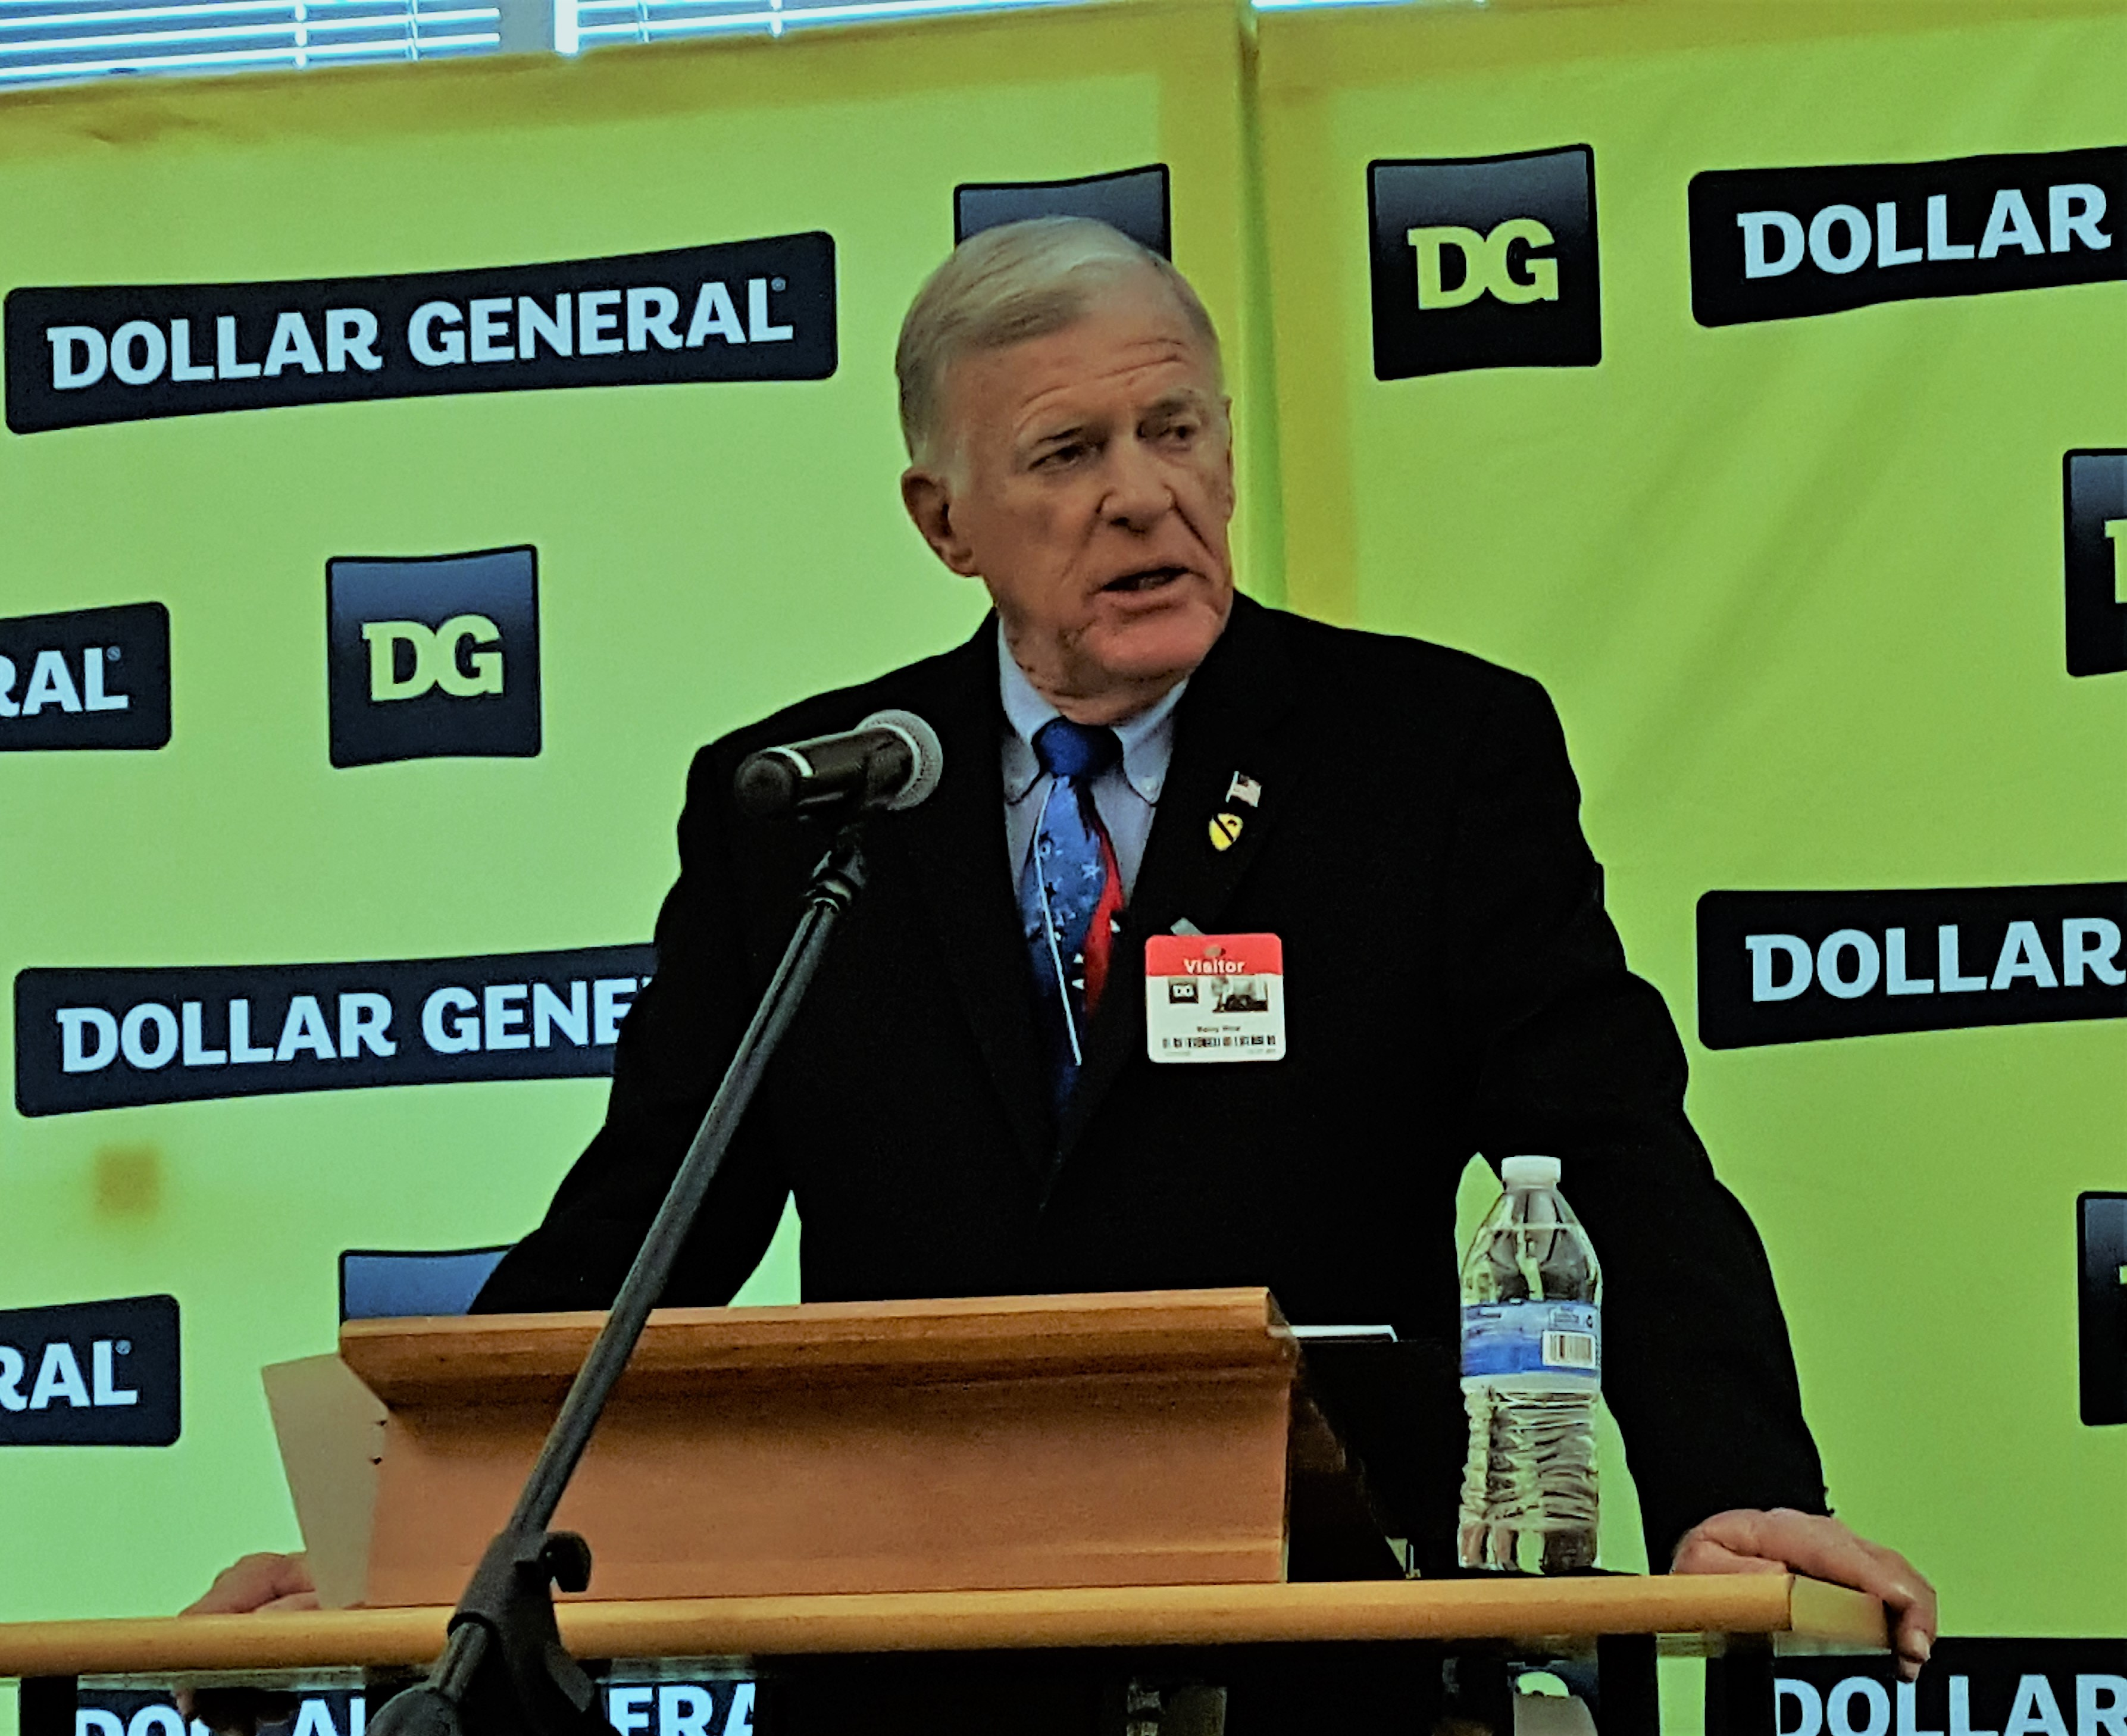 speaker barry at dollar general hosted event